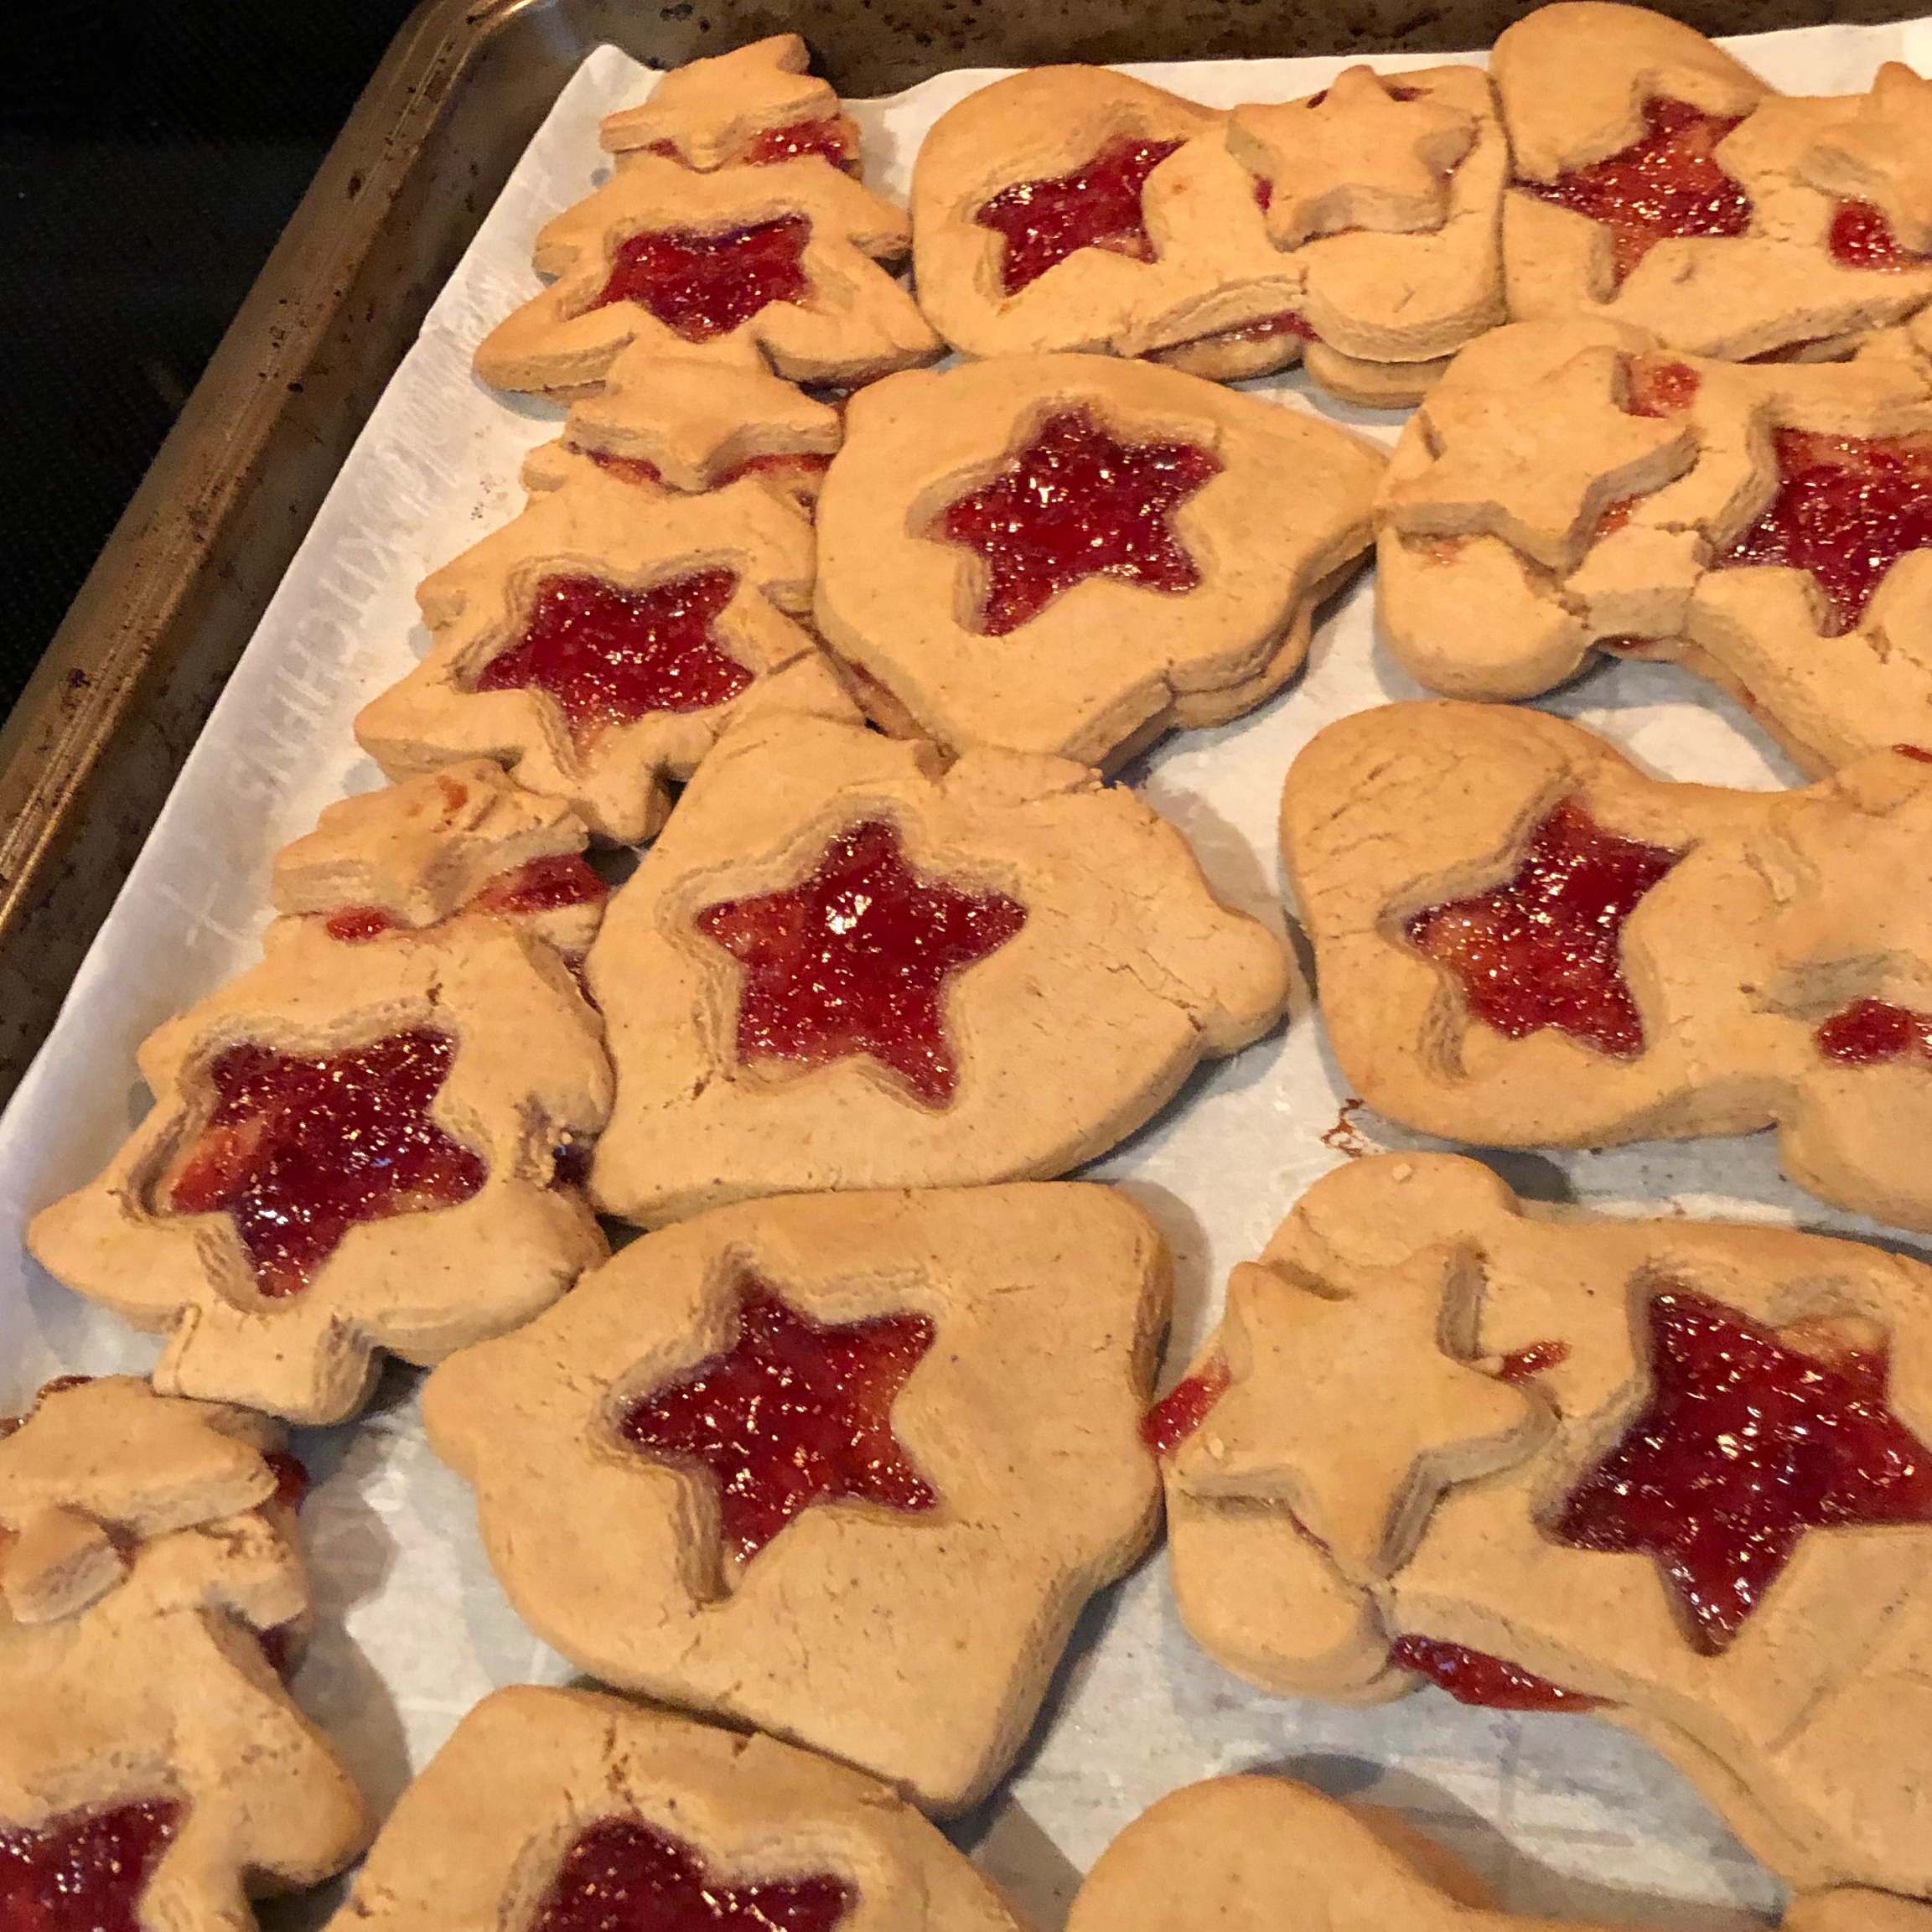 Granny's Strawberry Preserves-Filled Cookies Awakening Creative Concepts